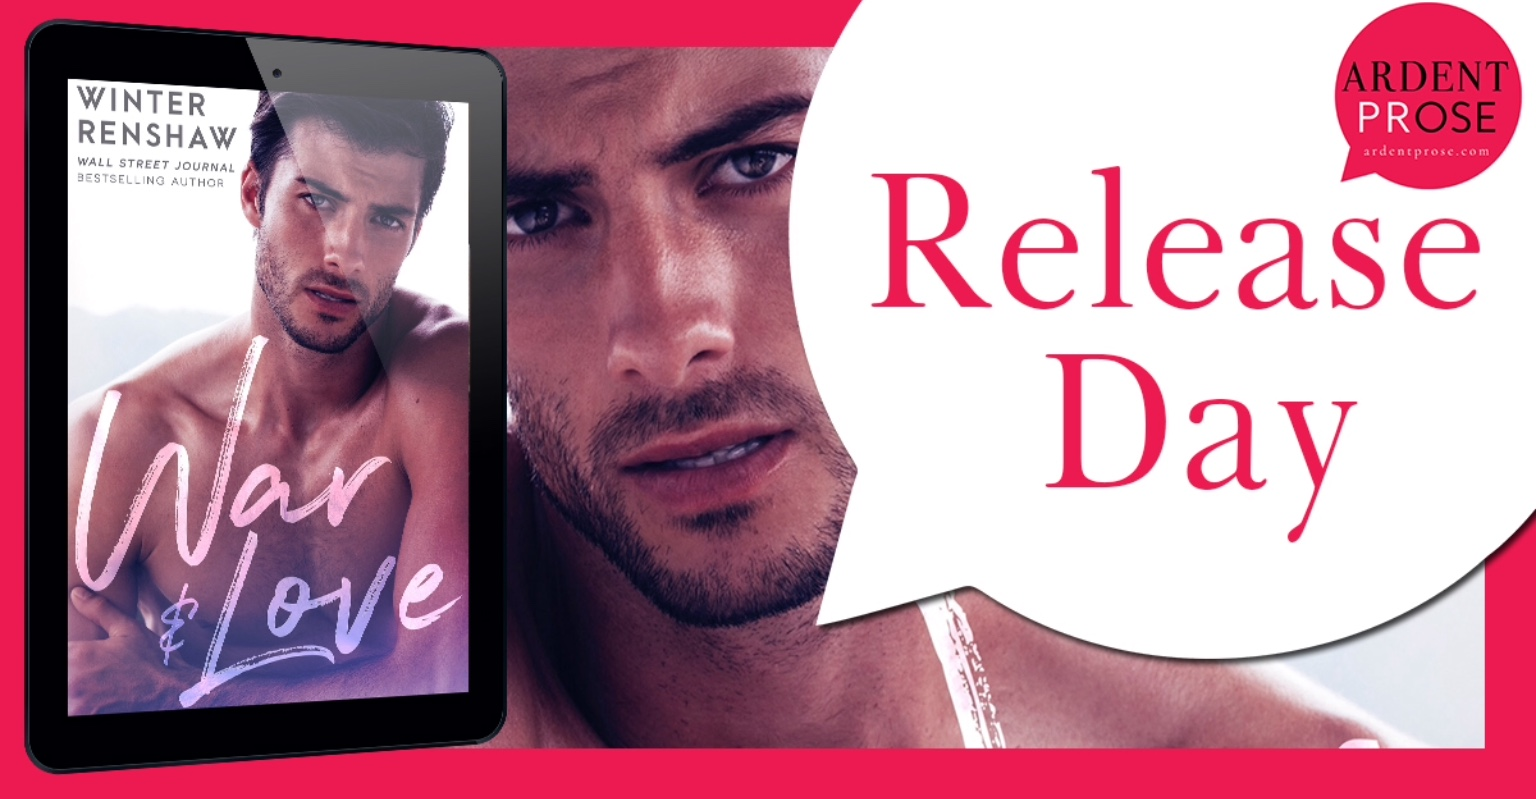 My Book Review + Release Blitz WAR & LOVE by Winter Renshaw